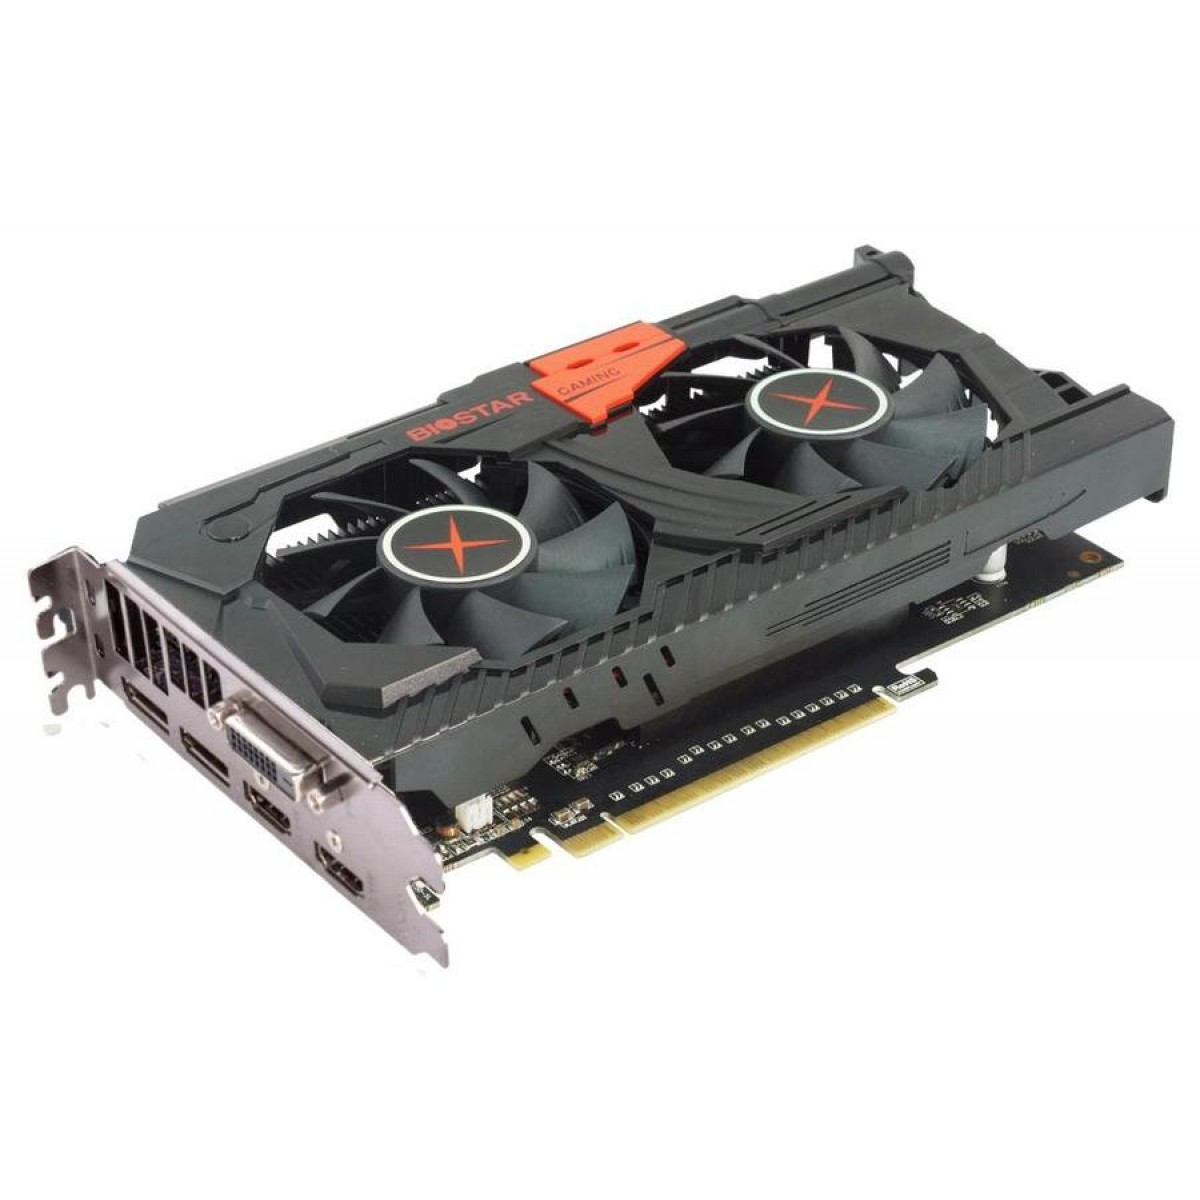 Placa de Video Biostar, Radeon, RX 570, 8GB, GDDR5, 256 Bit, VA5705RV82-TBSRH-BS2